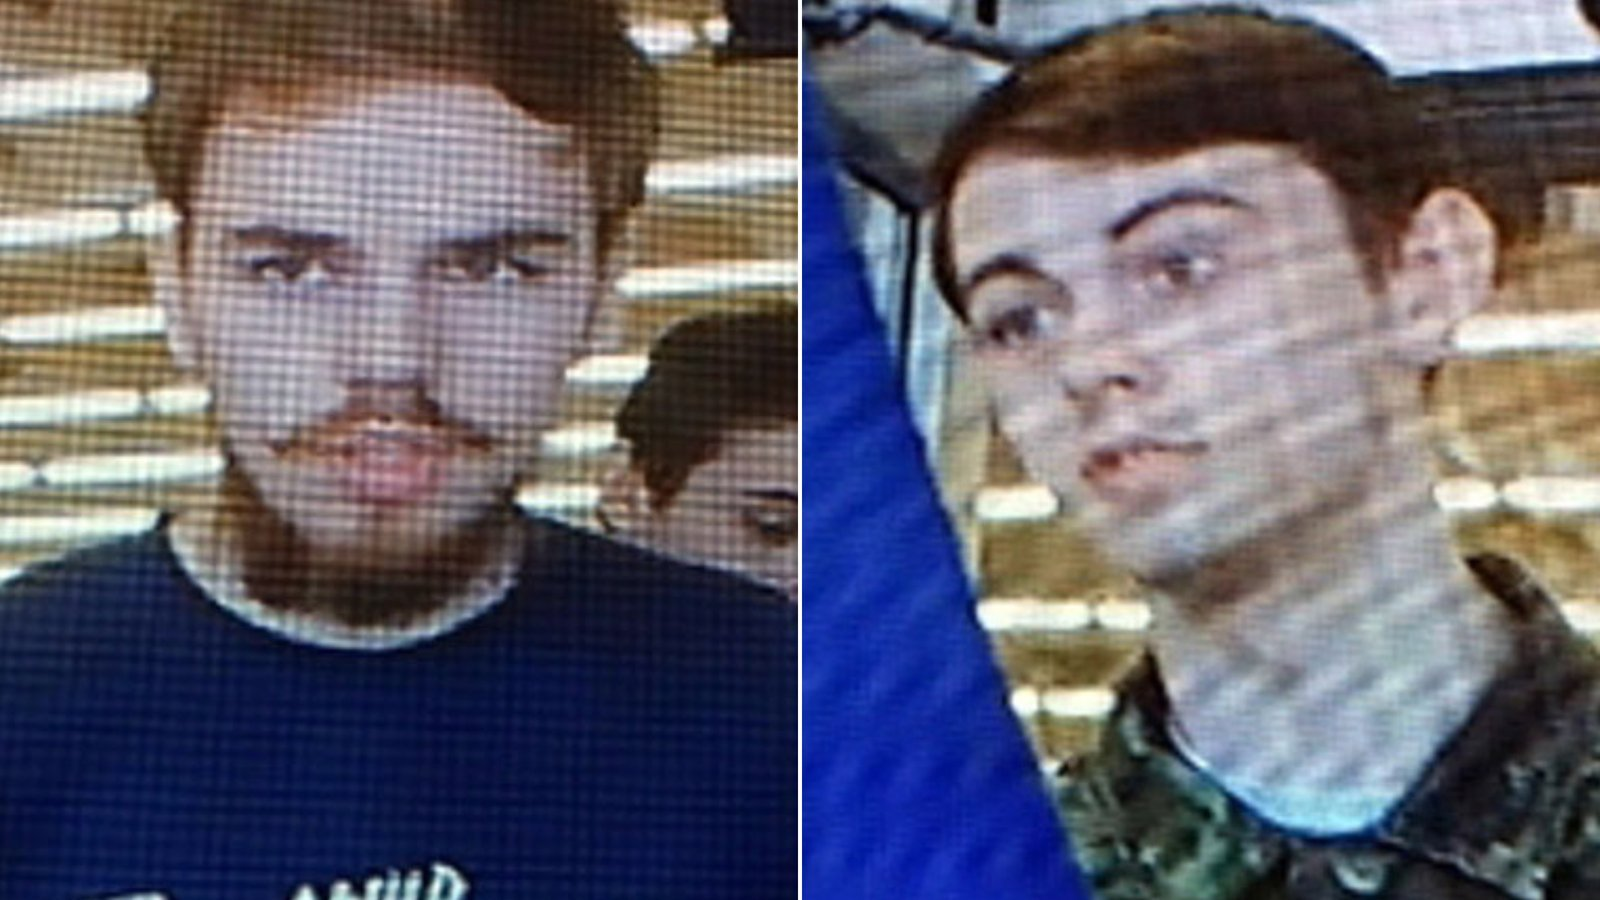 Kam McLeod (left) and Bryer Schmegelsky(right) are shown in undated photos released by the Royal Canadian Mounted Police.